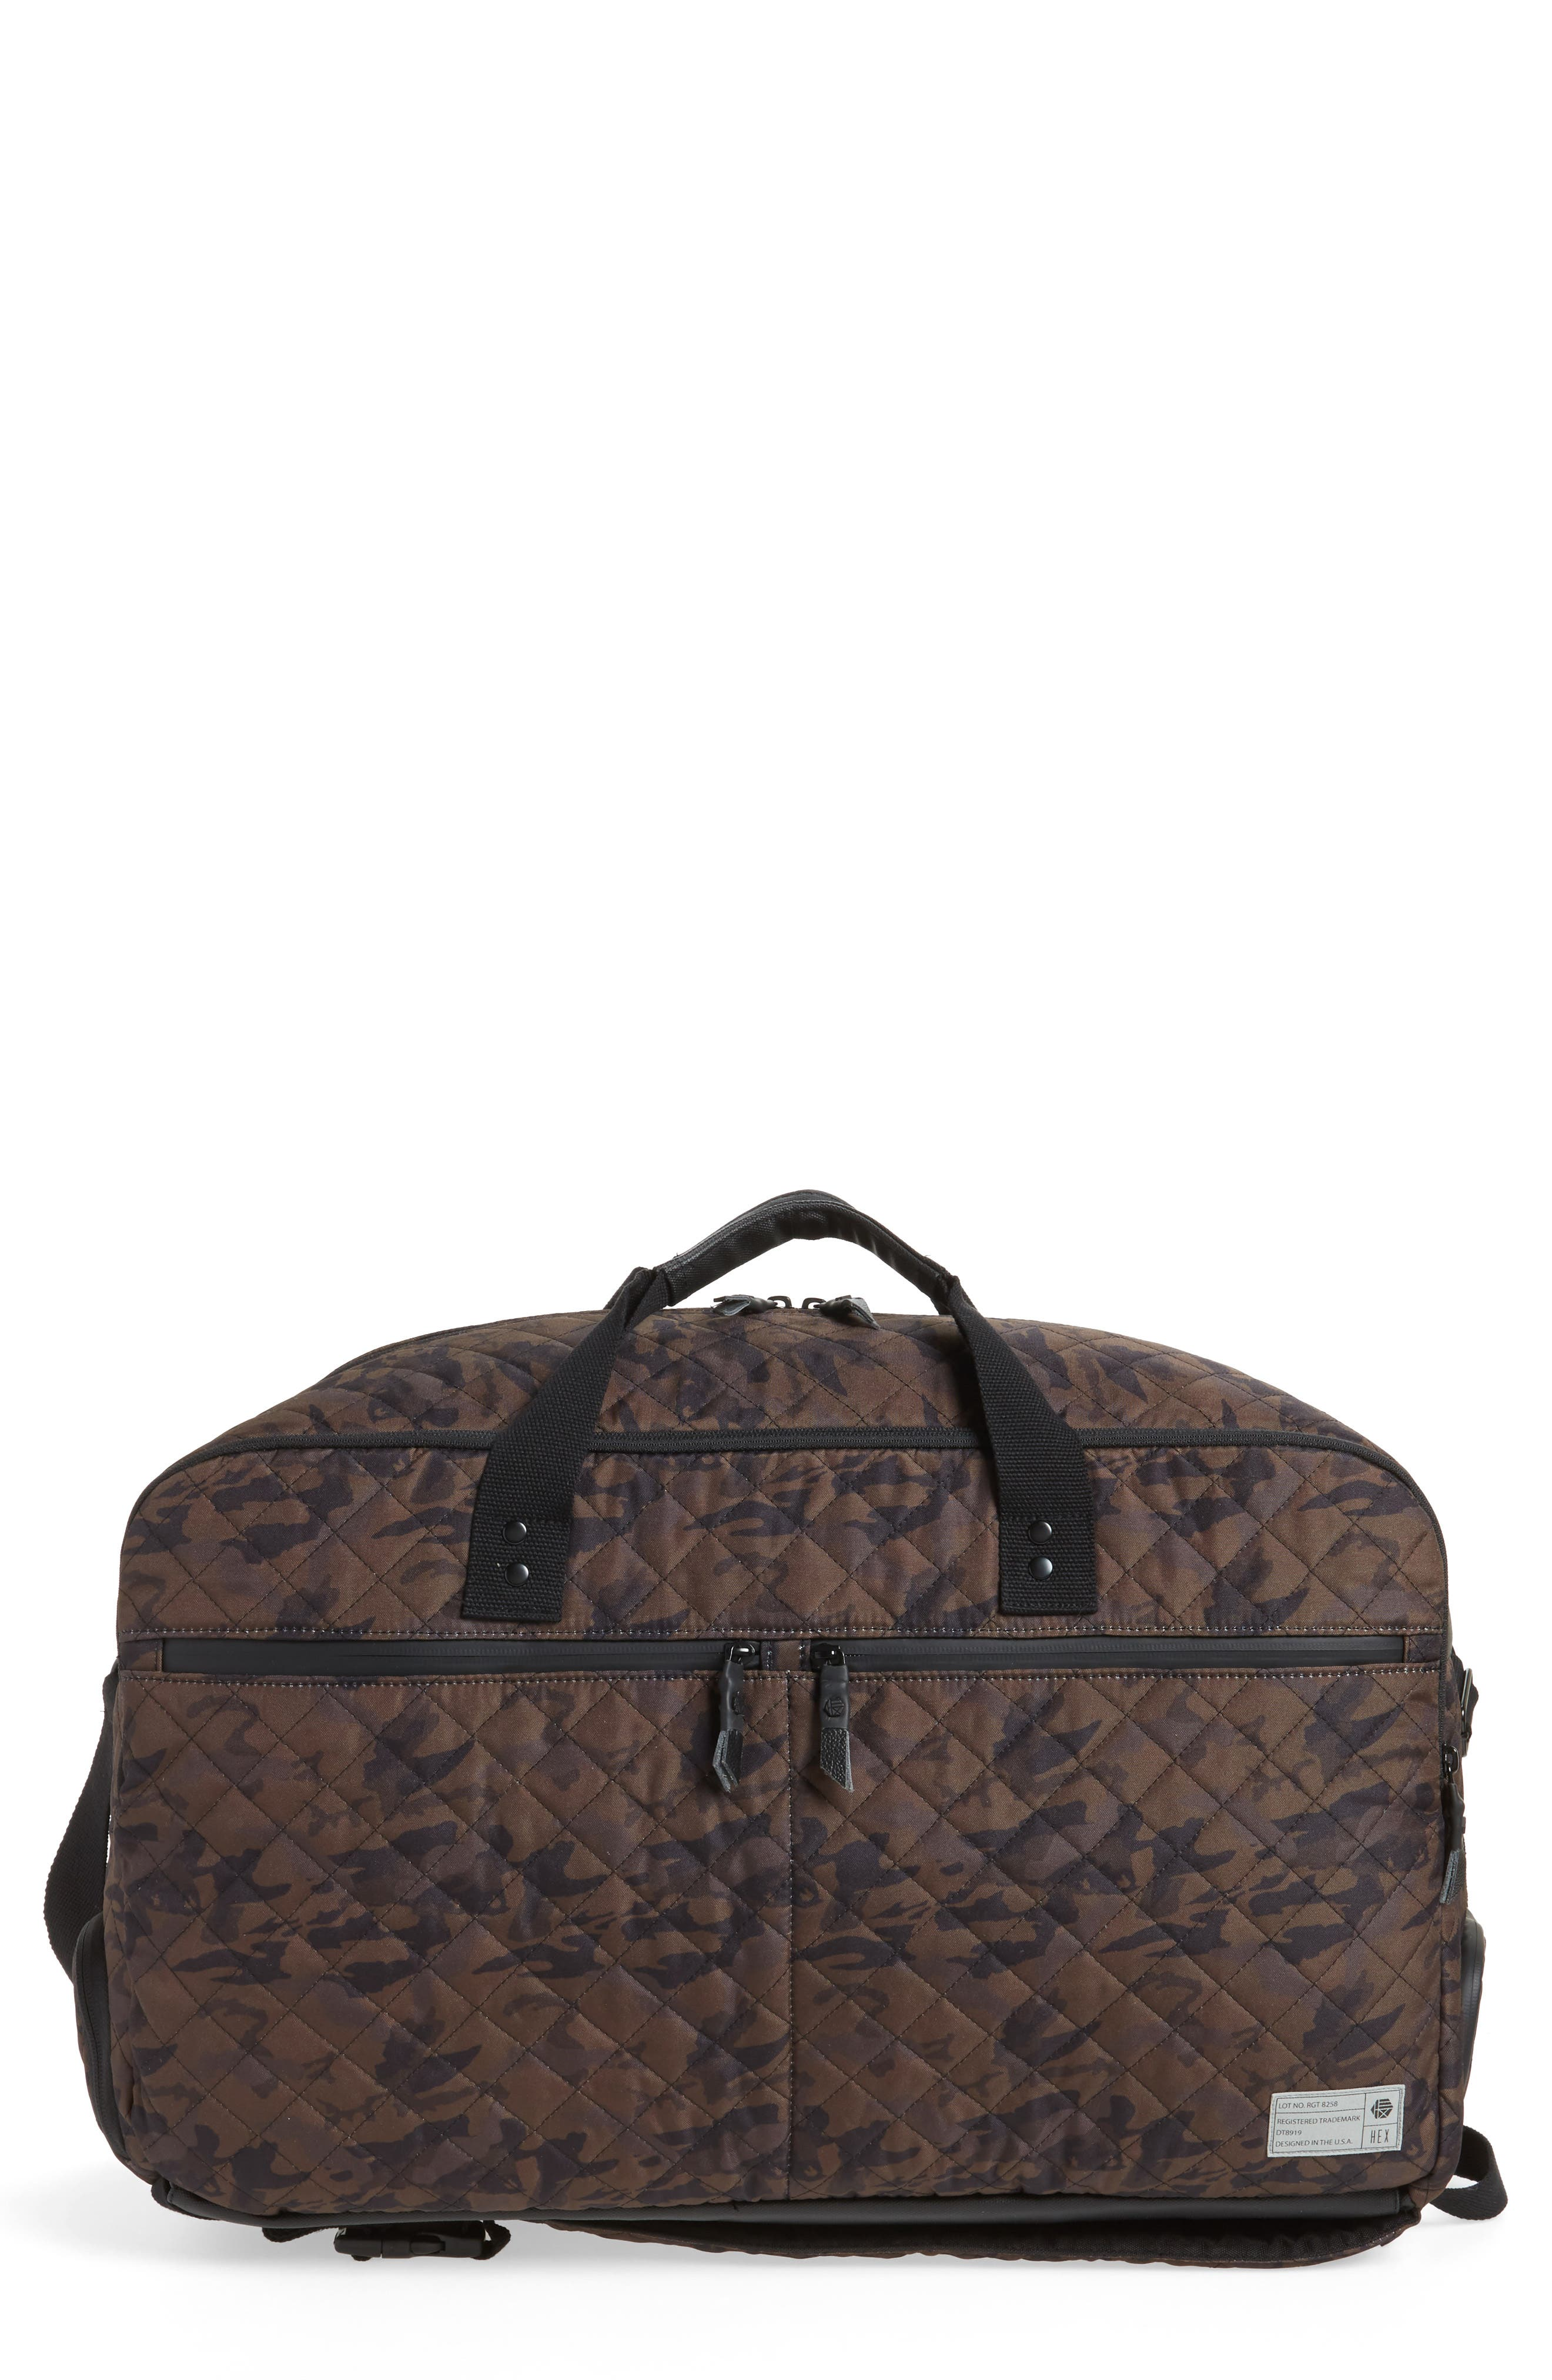 Convertible Duffel Bag,                         Main,                         color, Quilted Camo